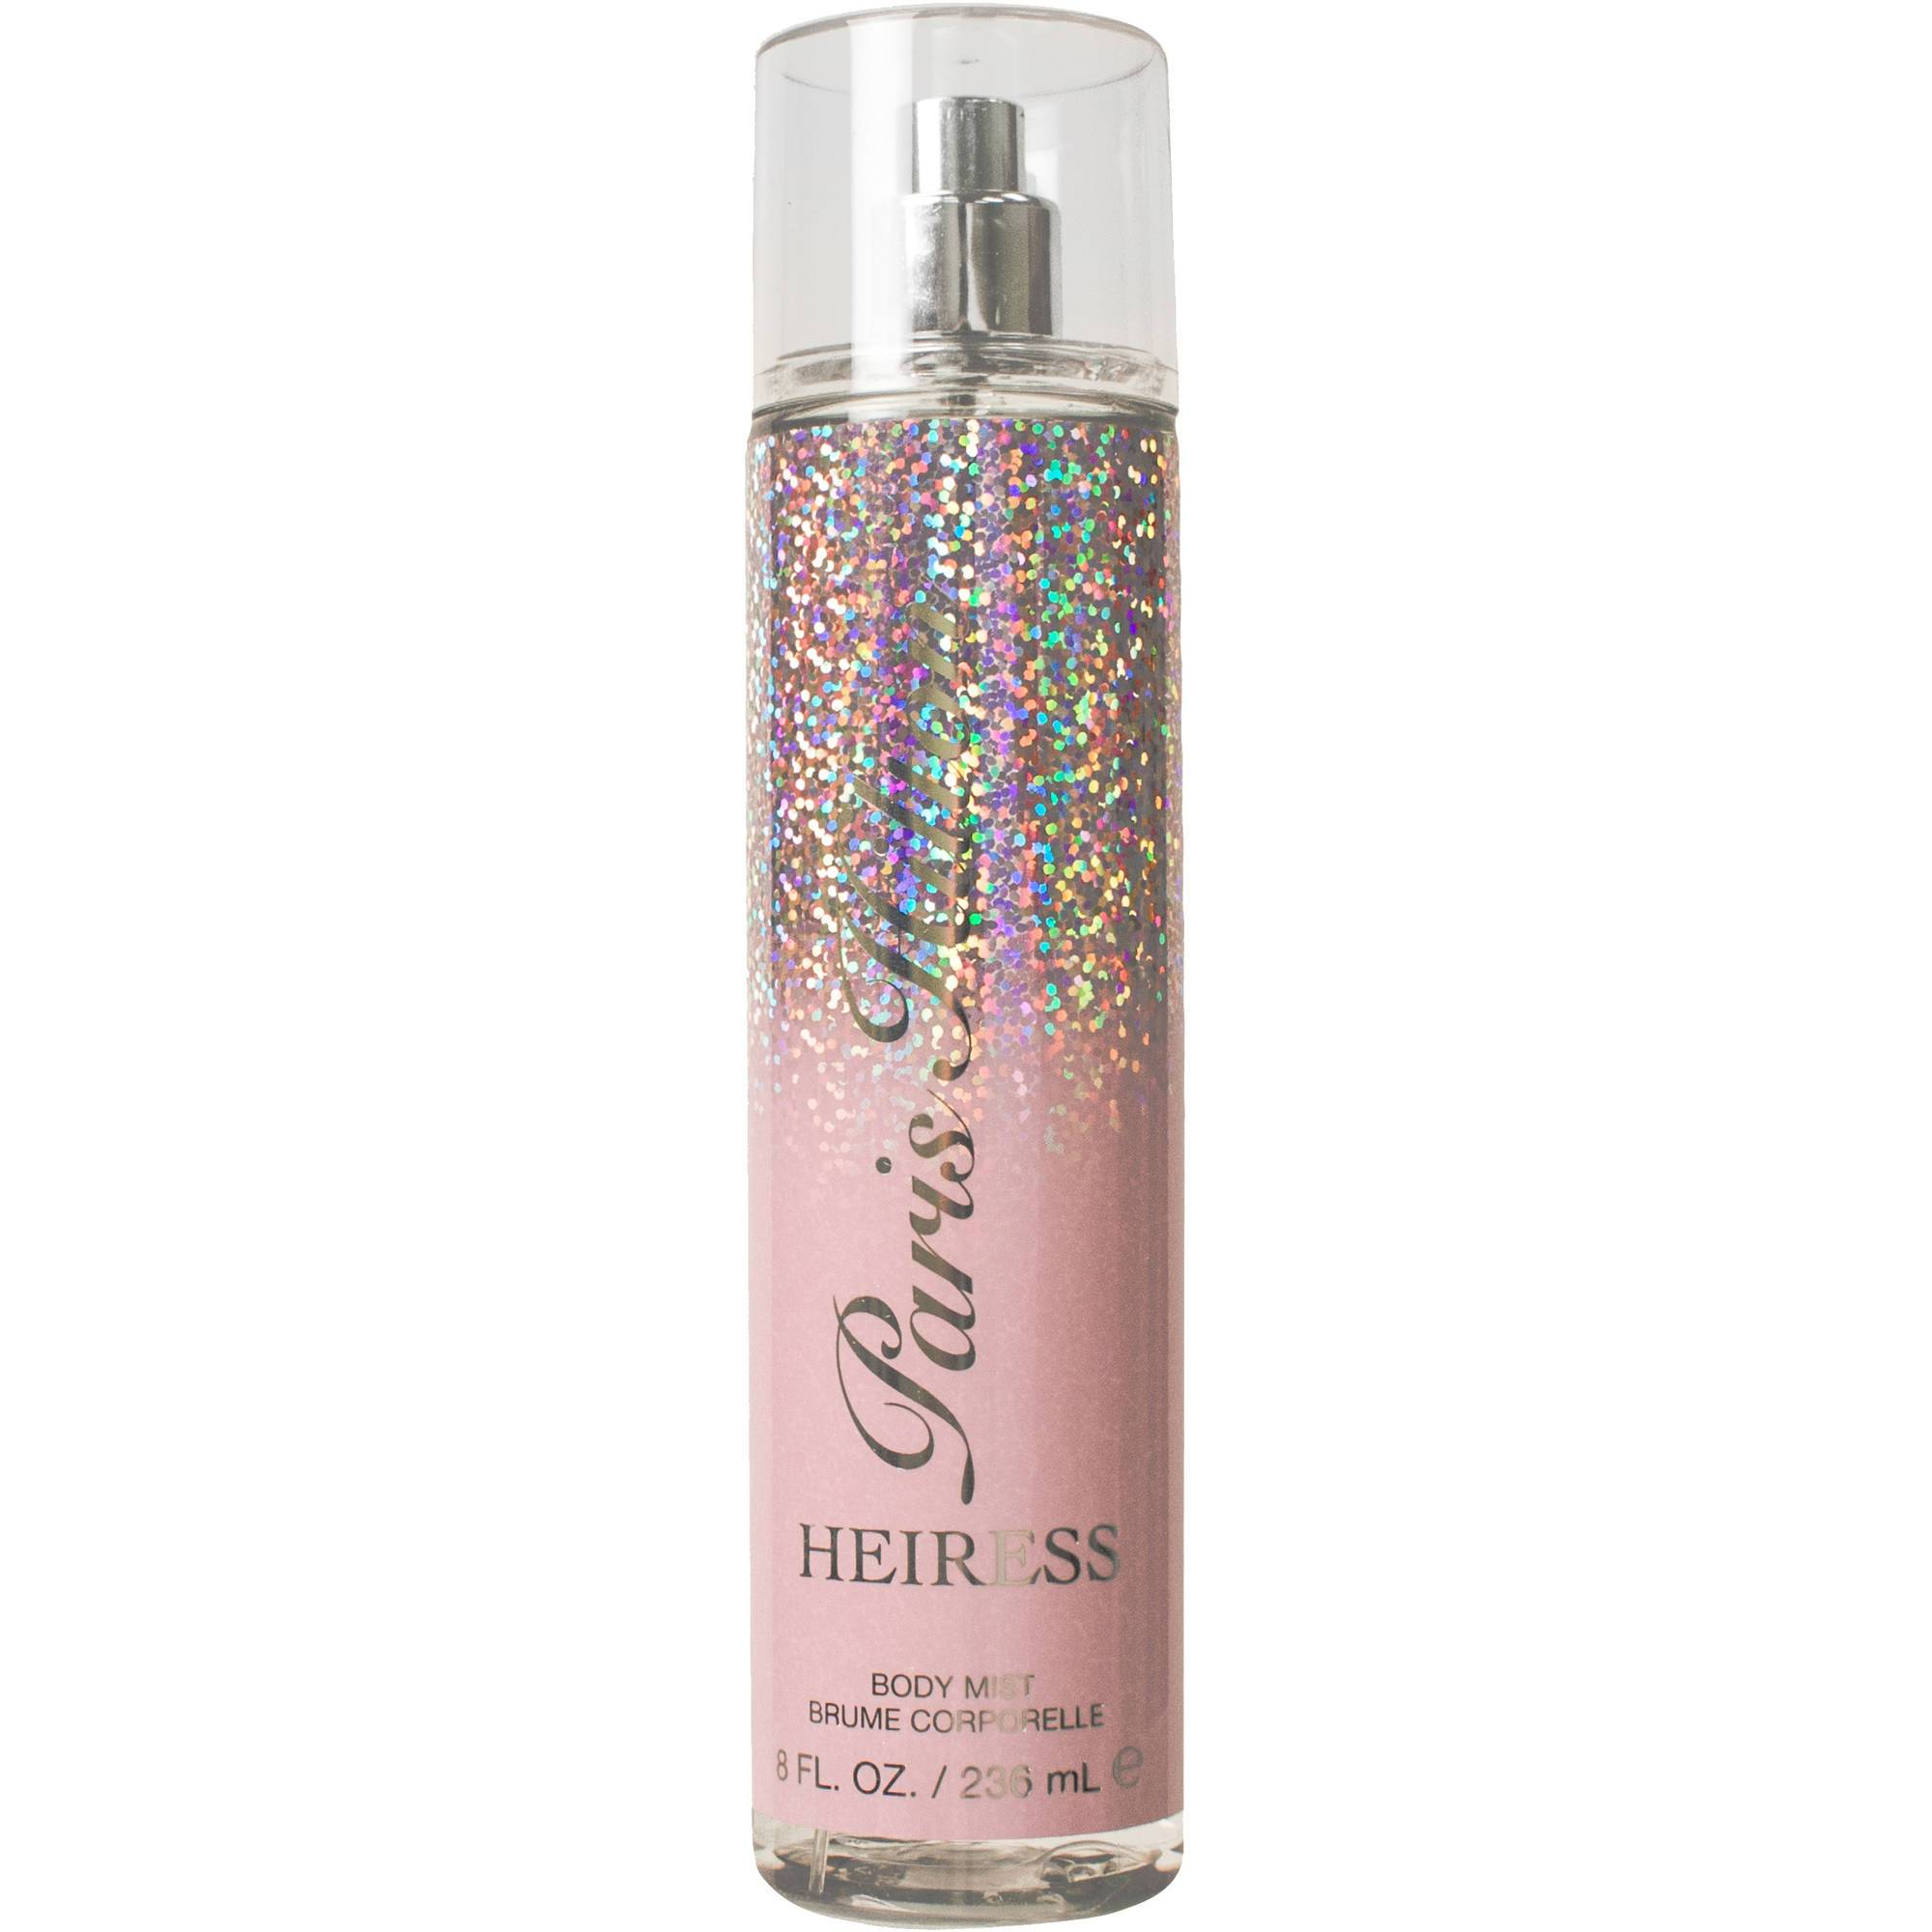 WOMENS FRAGRANCES - Heiress Paris Hilton 8 Oz Body Mist For Woman